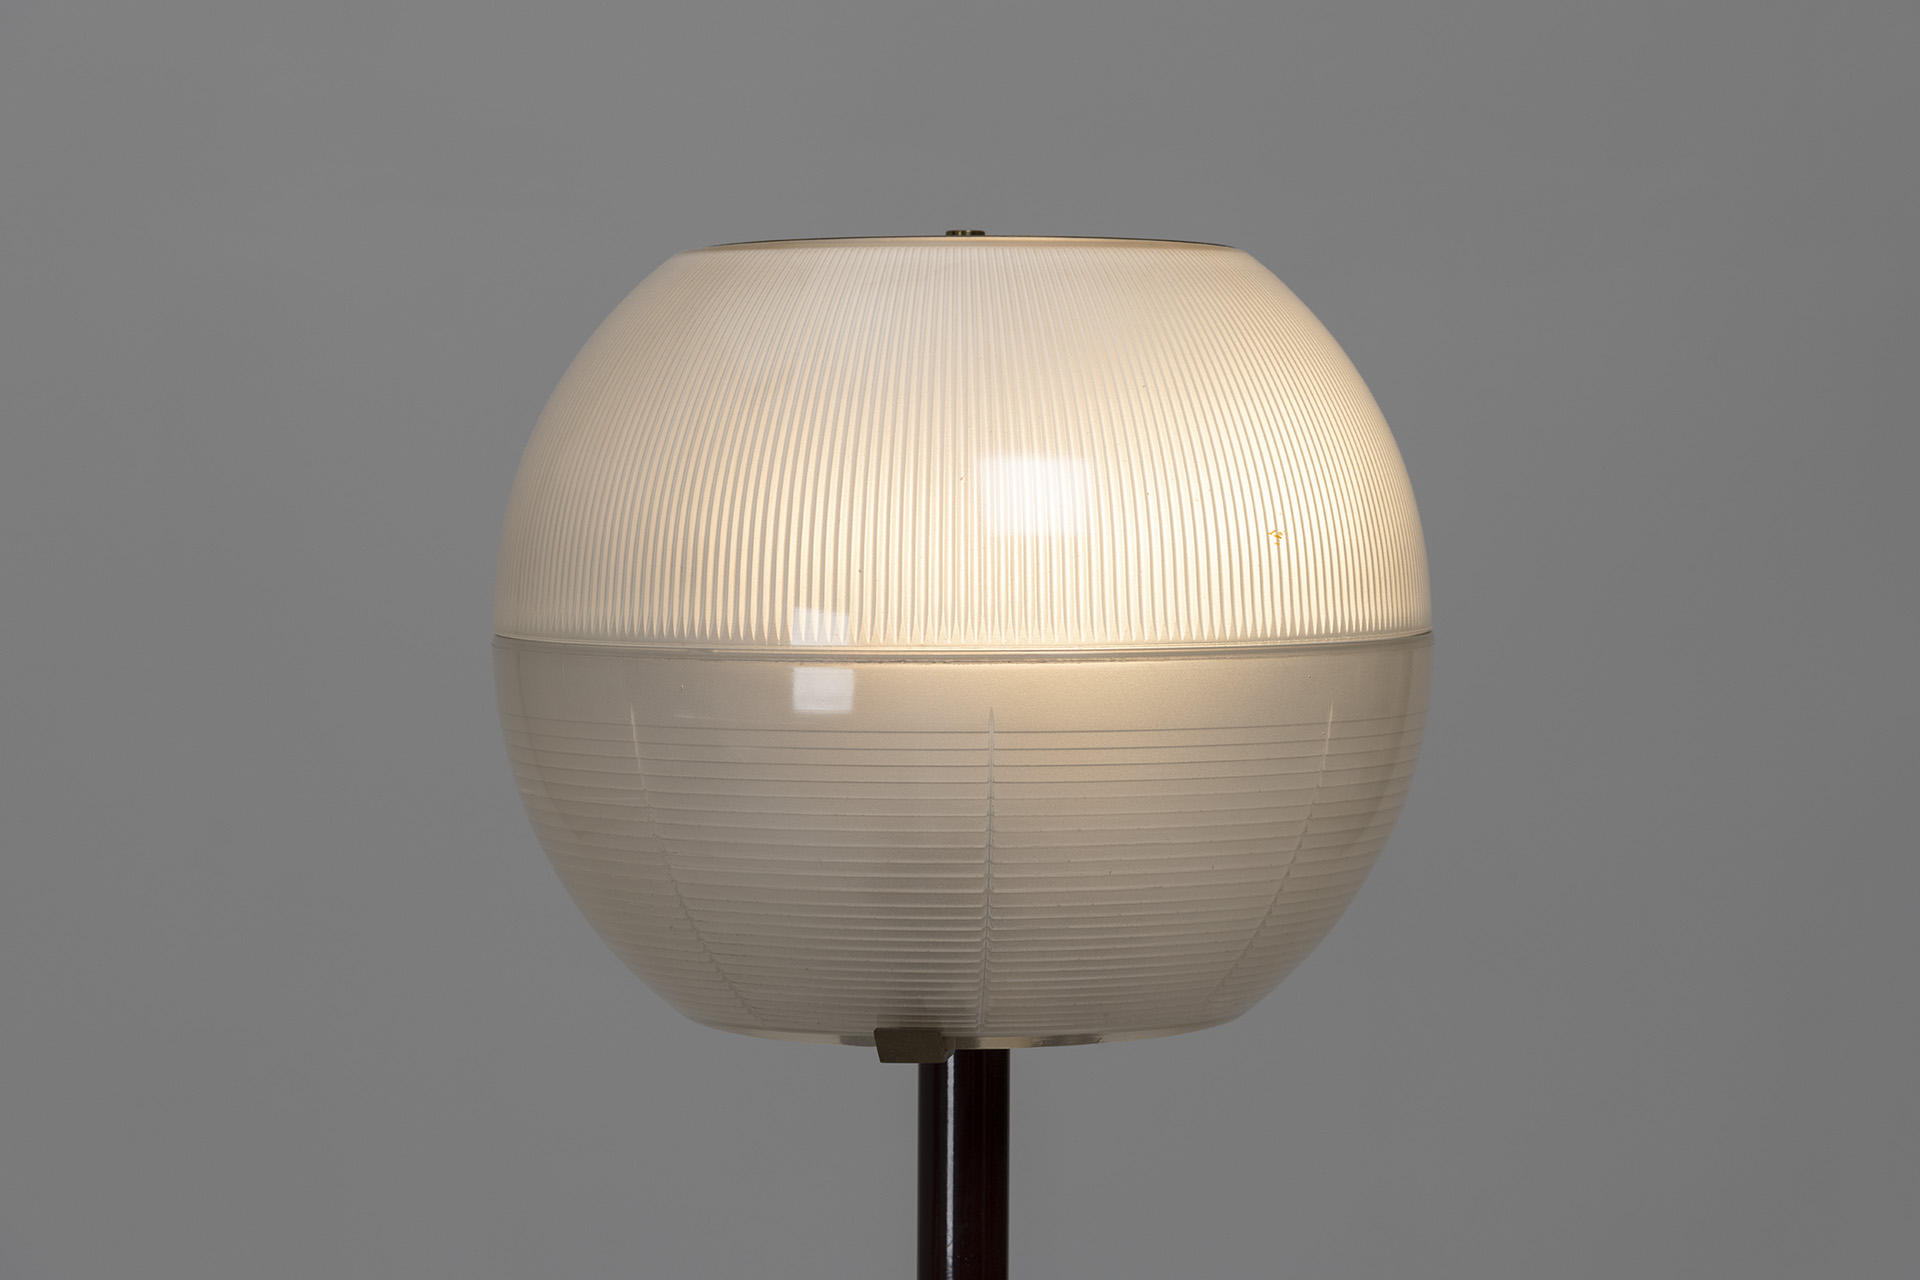 Floor Lamp, Model no. LTE 8